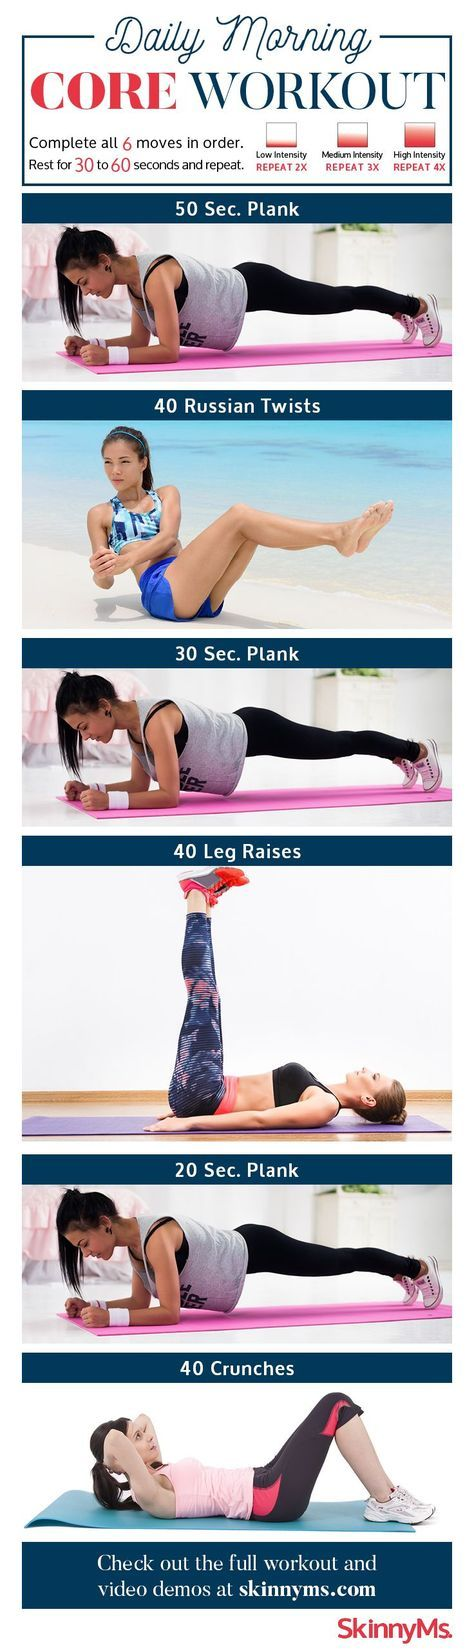 Daily Morning Core Workout to Start your Day Off Right